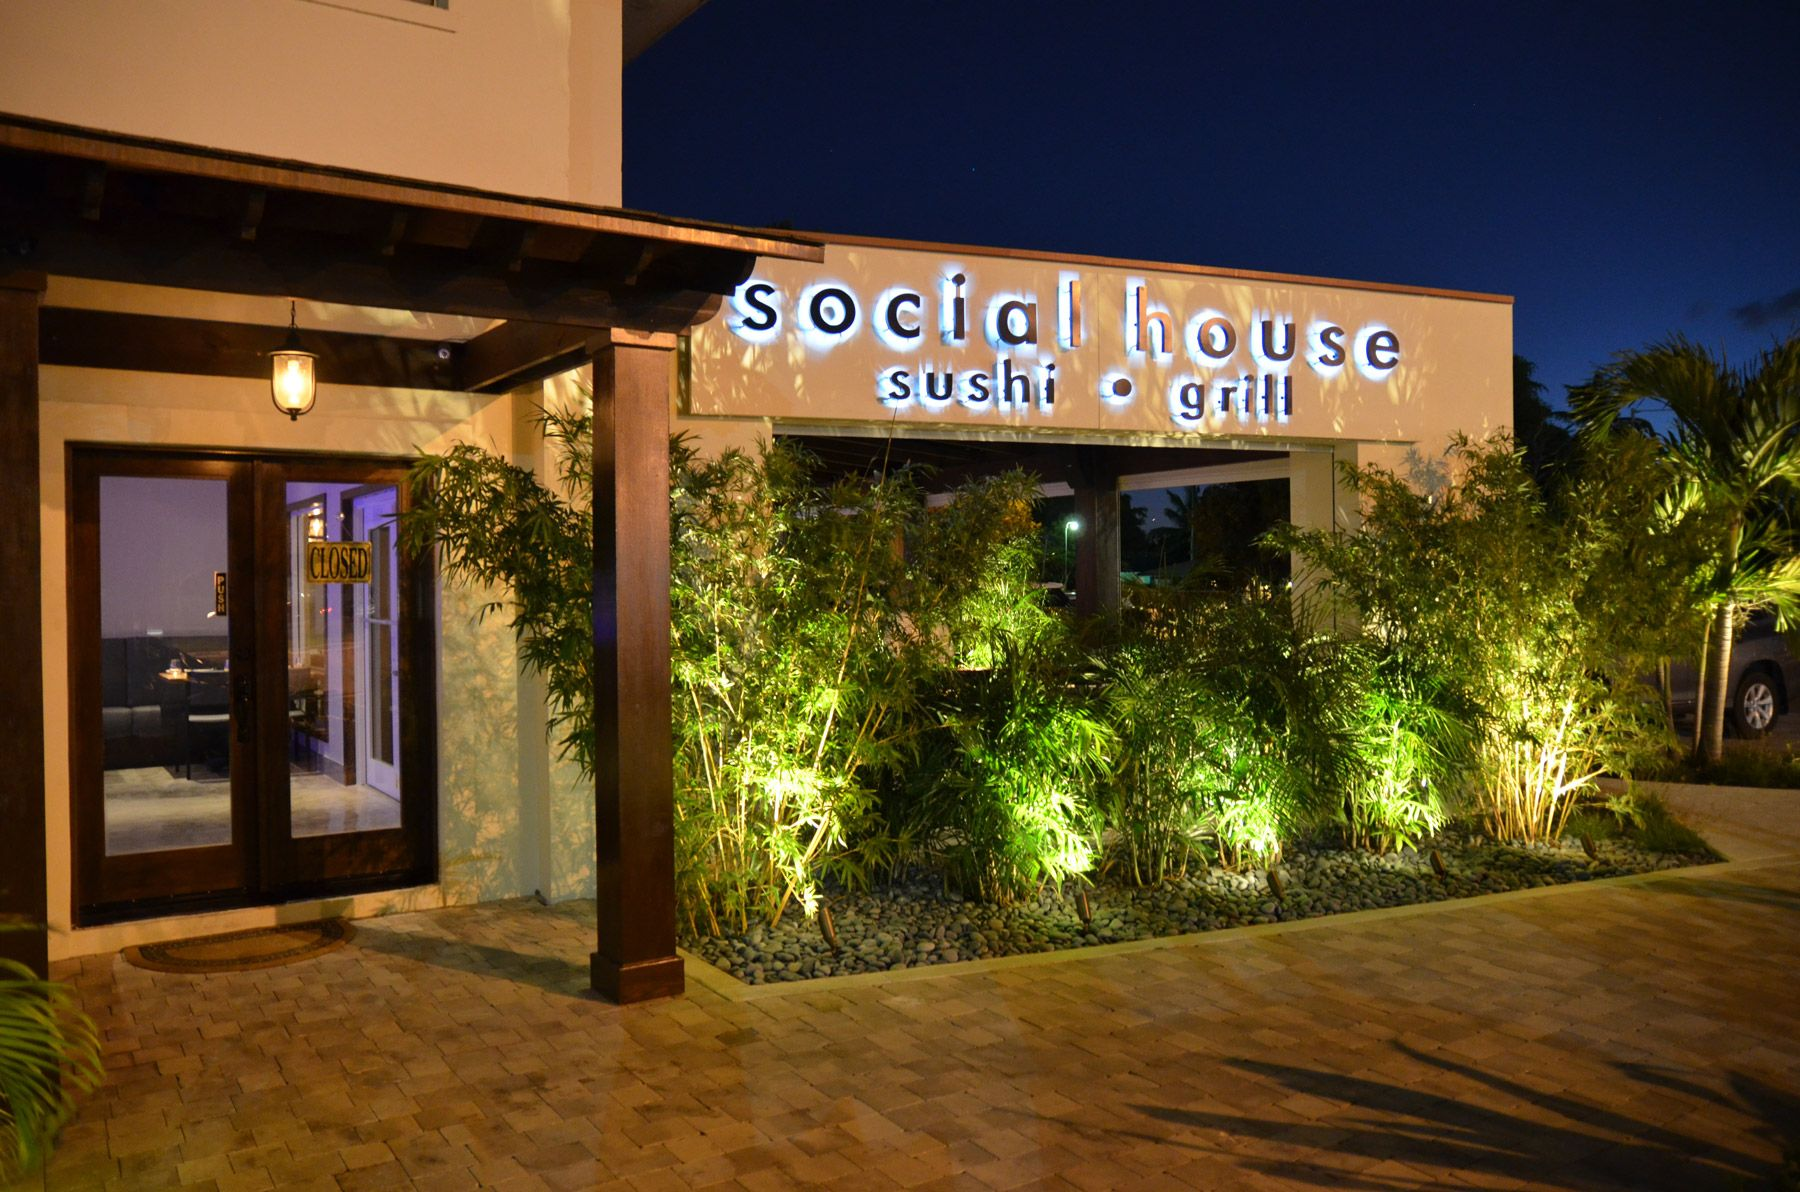 social house sushi & grill front view